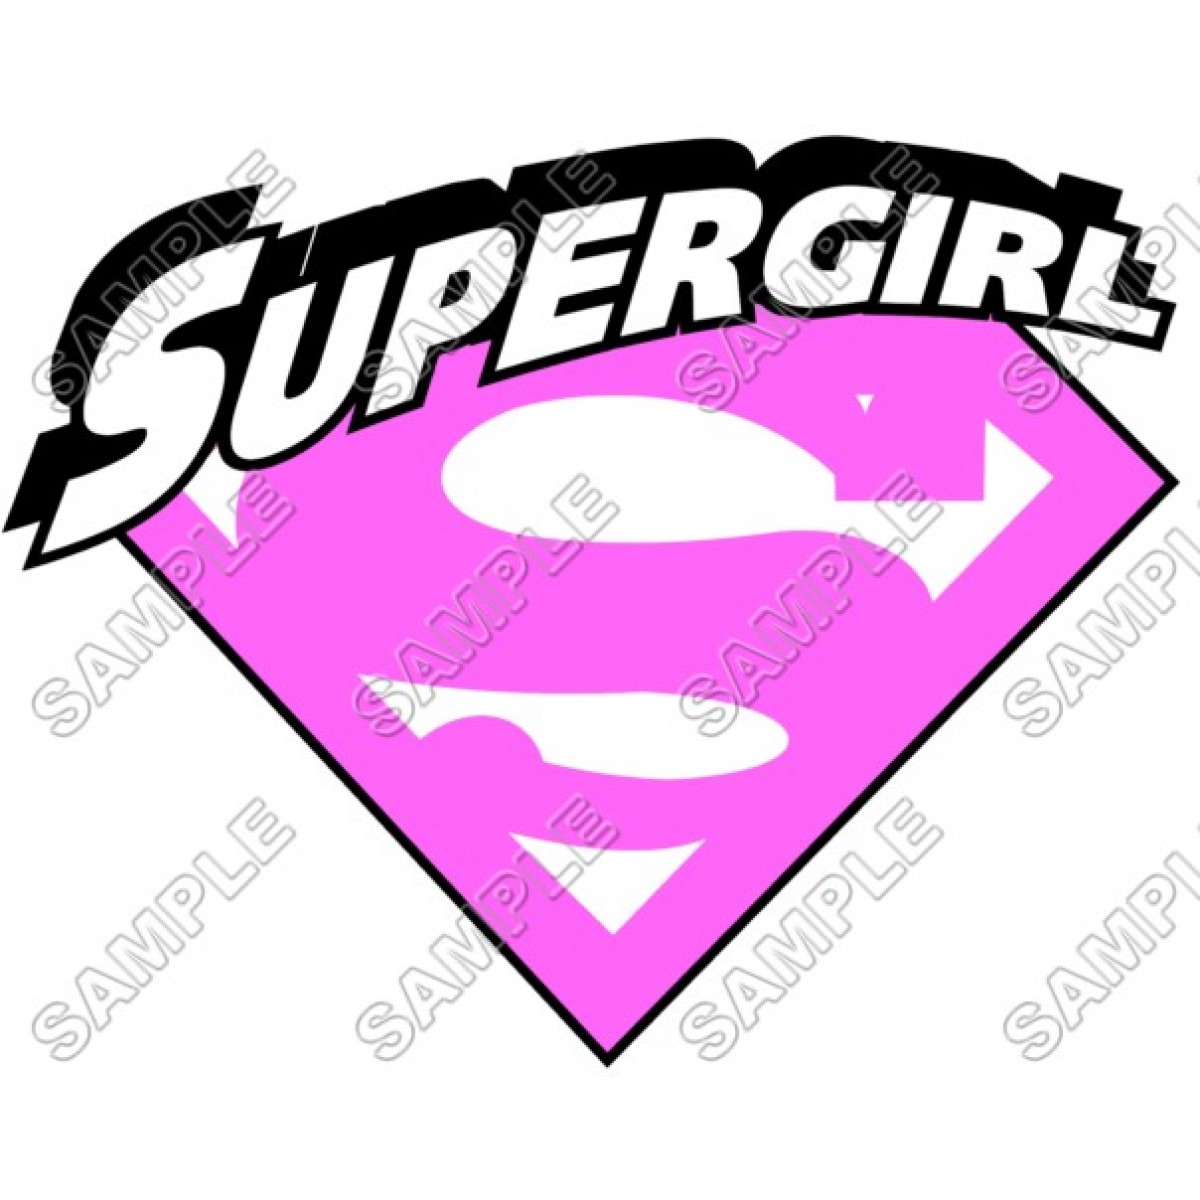 1200x1200 Personalized Iron On Transfers! Supergirl Pink Logo T Shirt Iron